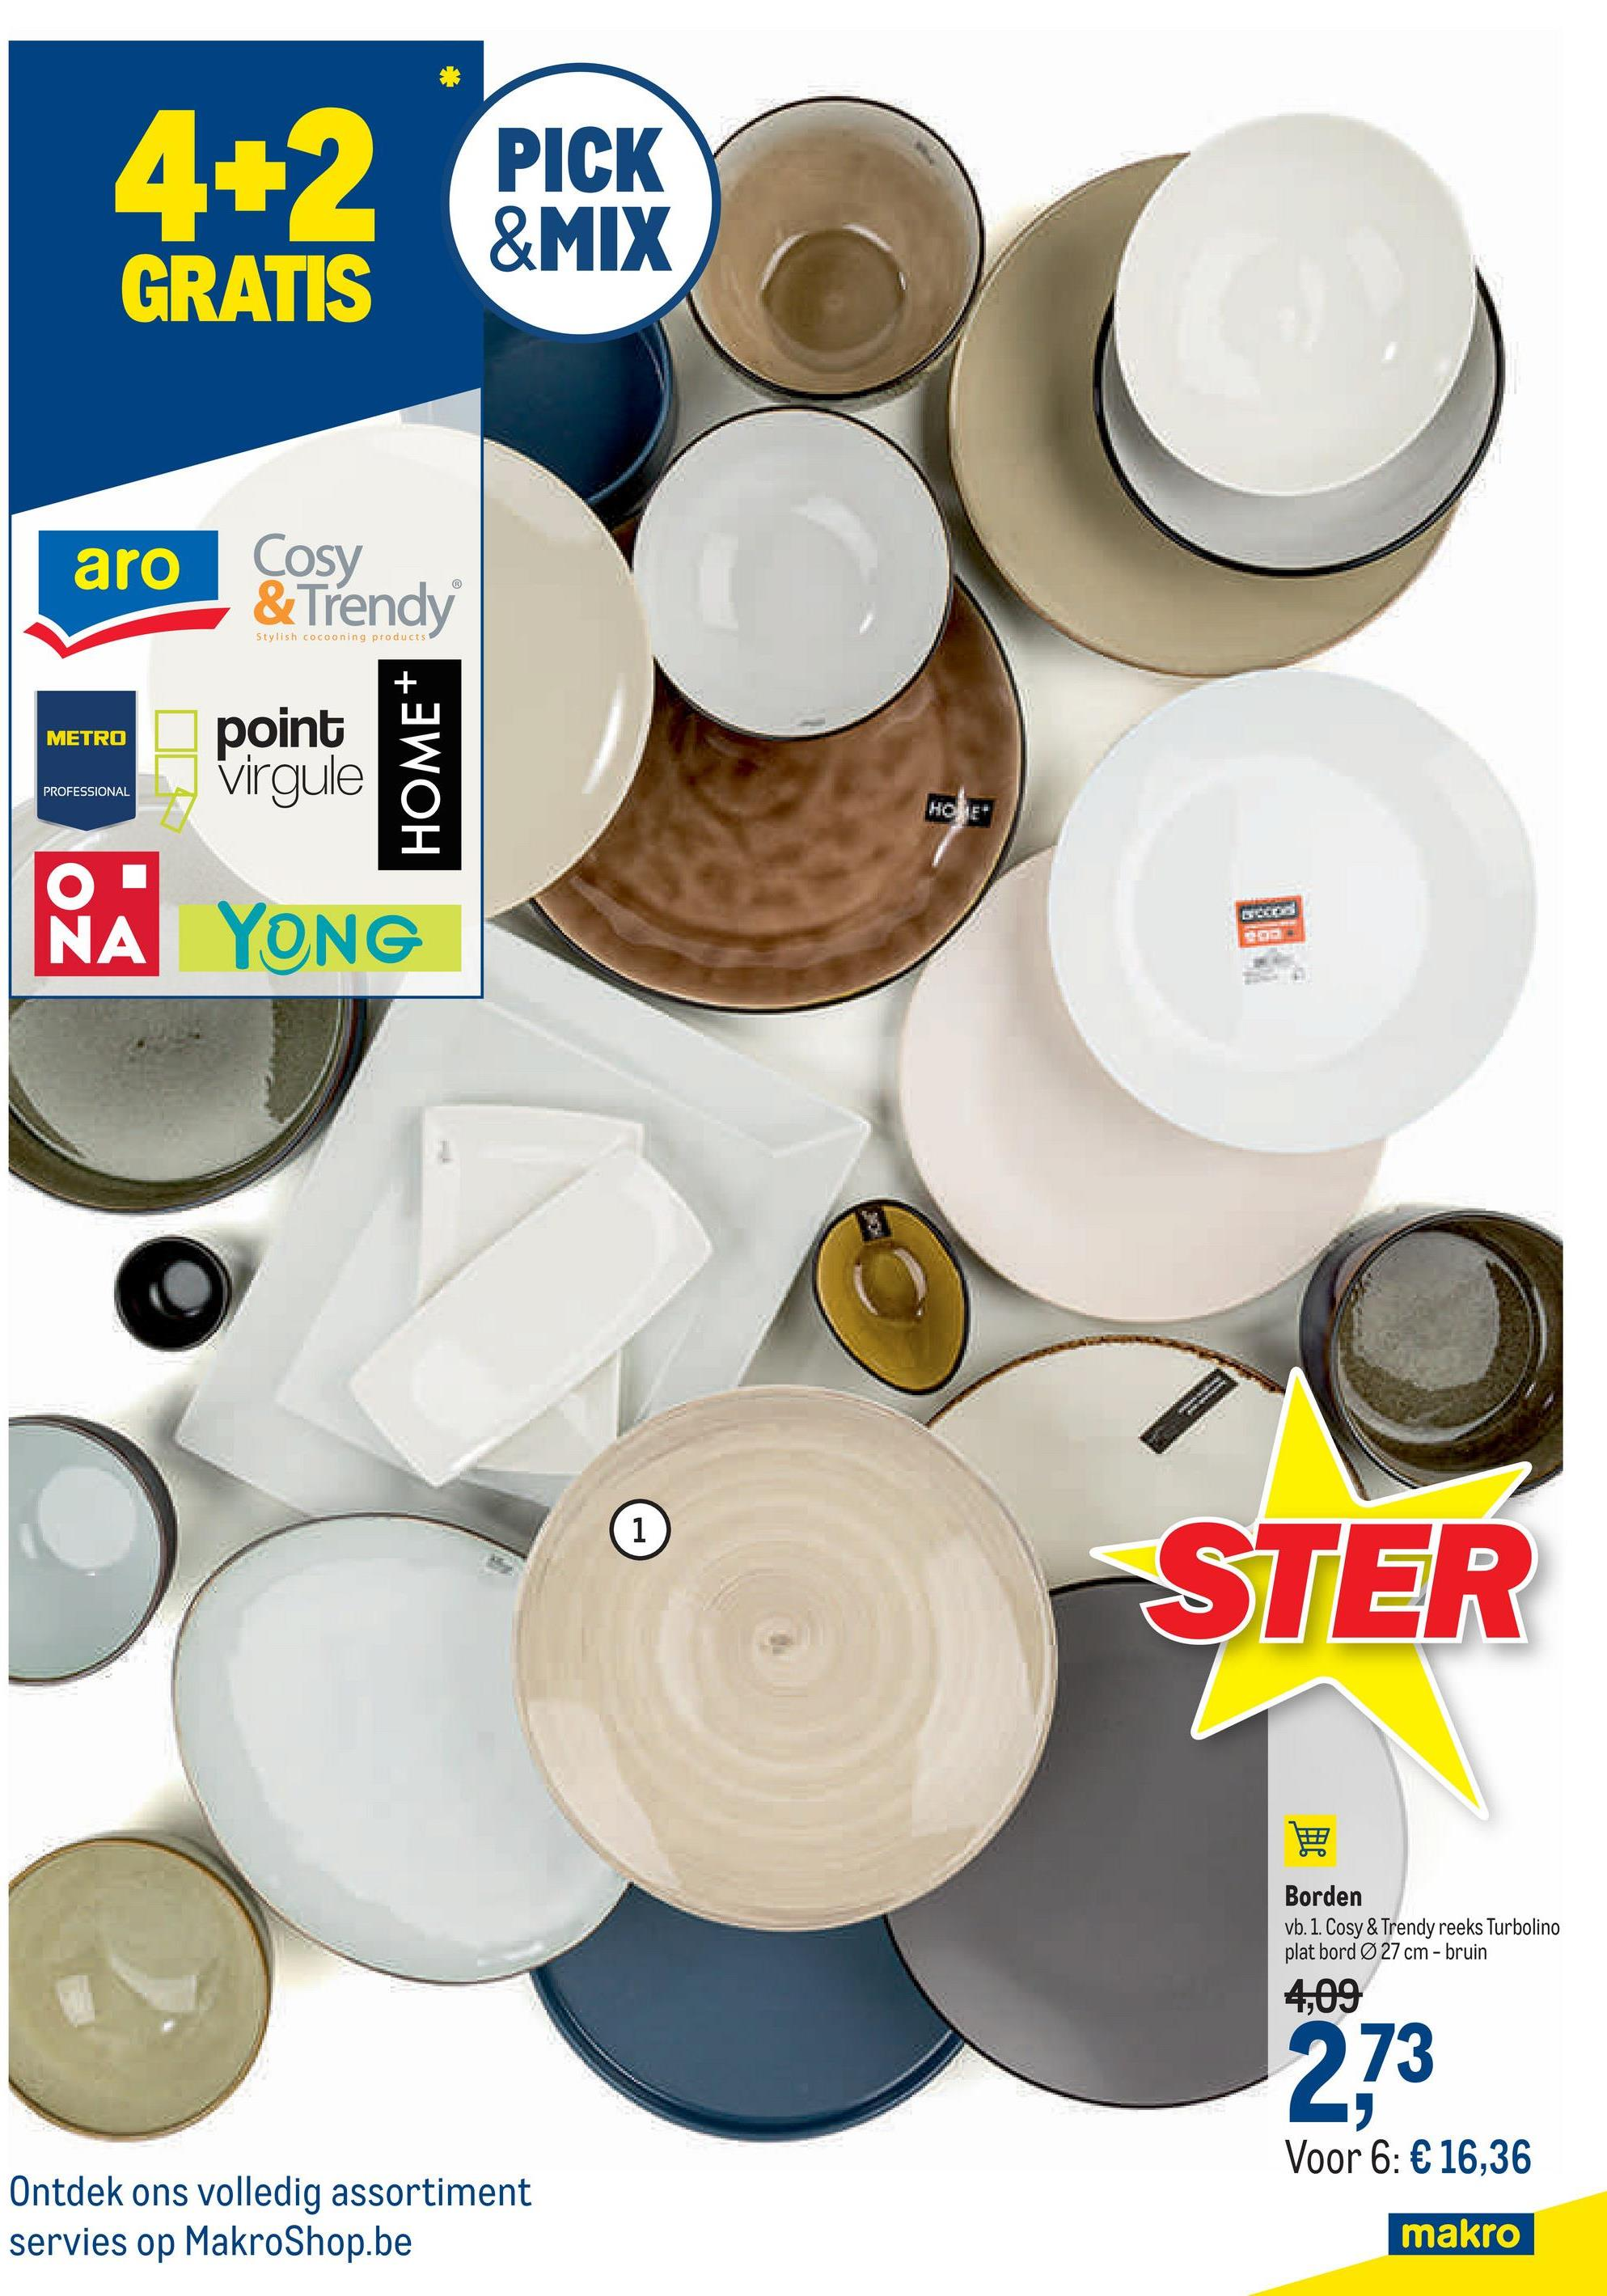 PICK &MIX GRATIS aro Cosy & Trendy Stylish cocooning products METRO point Virgule HOME PROFESSIONAL NA YONG 1 STER Borden vb. 1. Cosy & Trendy reeks Turbolino plat bord Ø 27 cm - bruin 4,09 273 Voor 6: € 16,36 Ontdek ons volledig assortiment servies op MakroShop.be makro